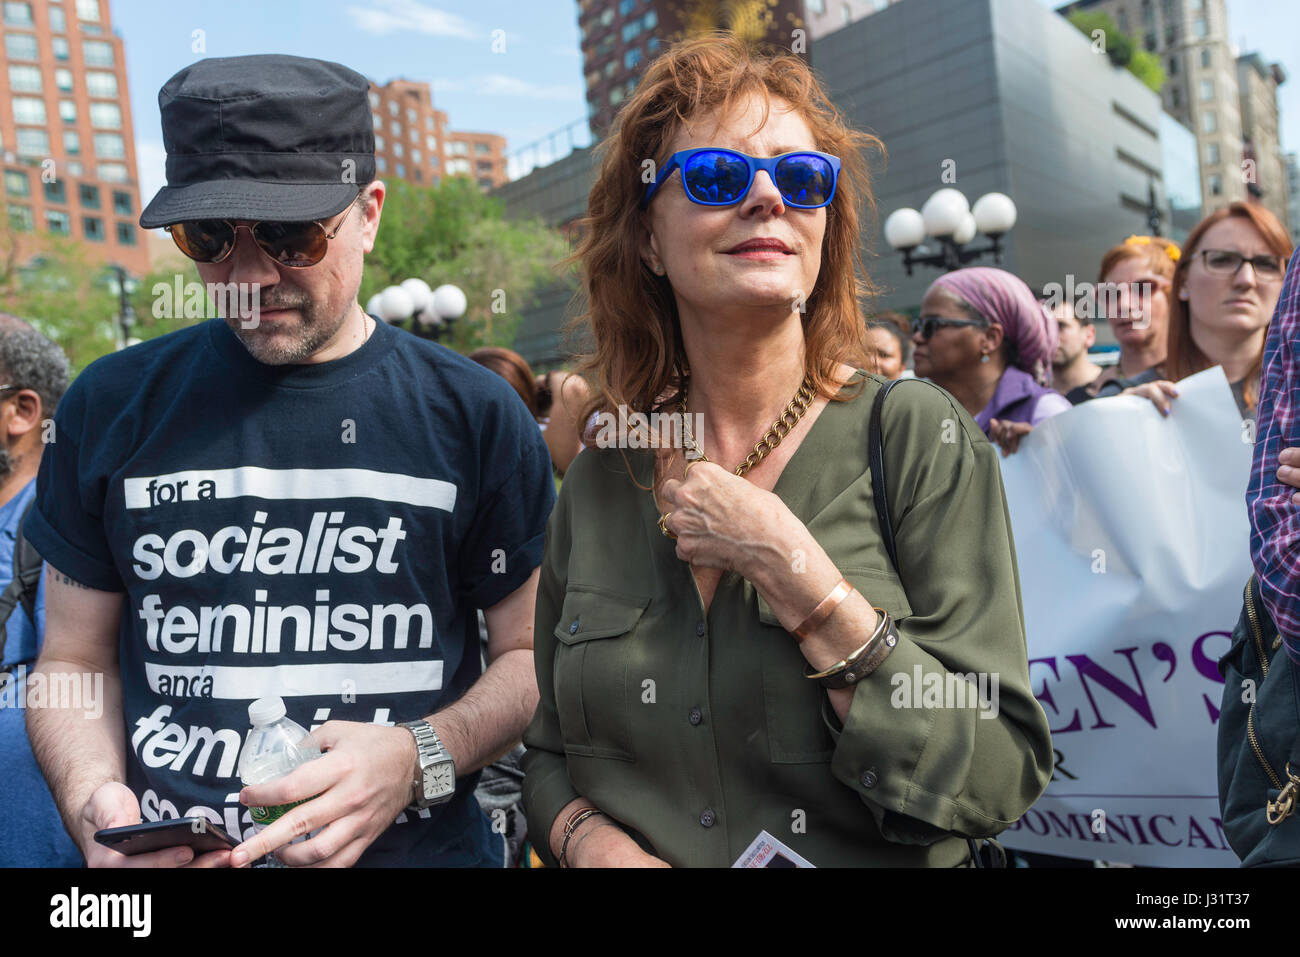 New York, NY 1 May 2017 - Actor and political activist Susan Sarandon at a May Day rally in Union Square Park. ©Stacy - Stock Image